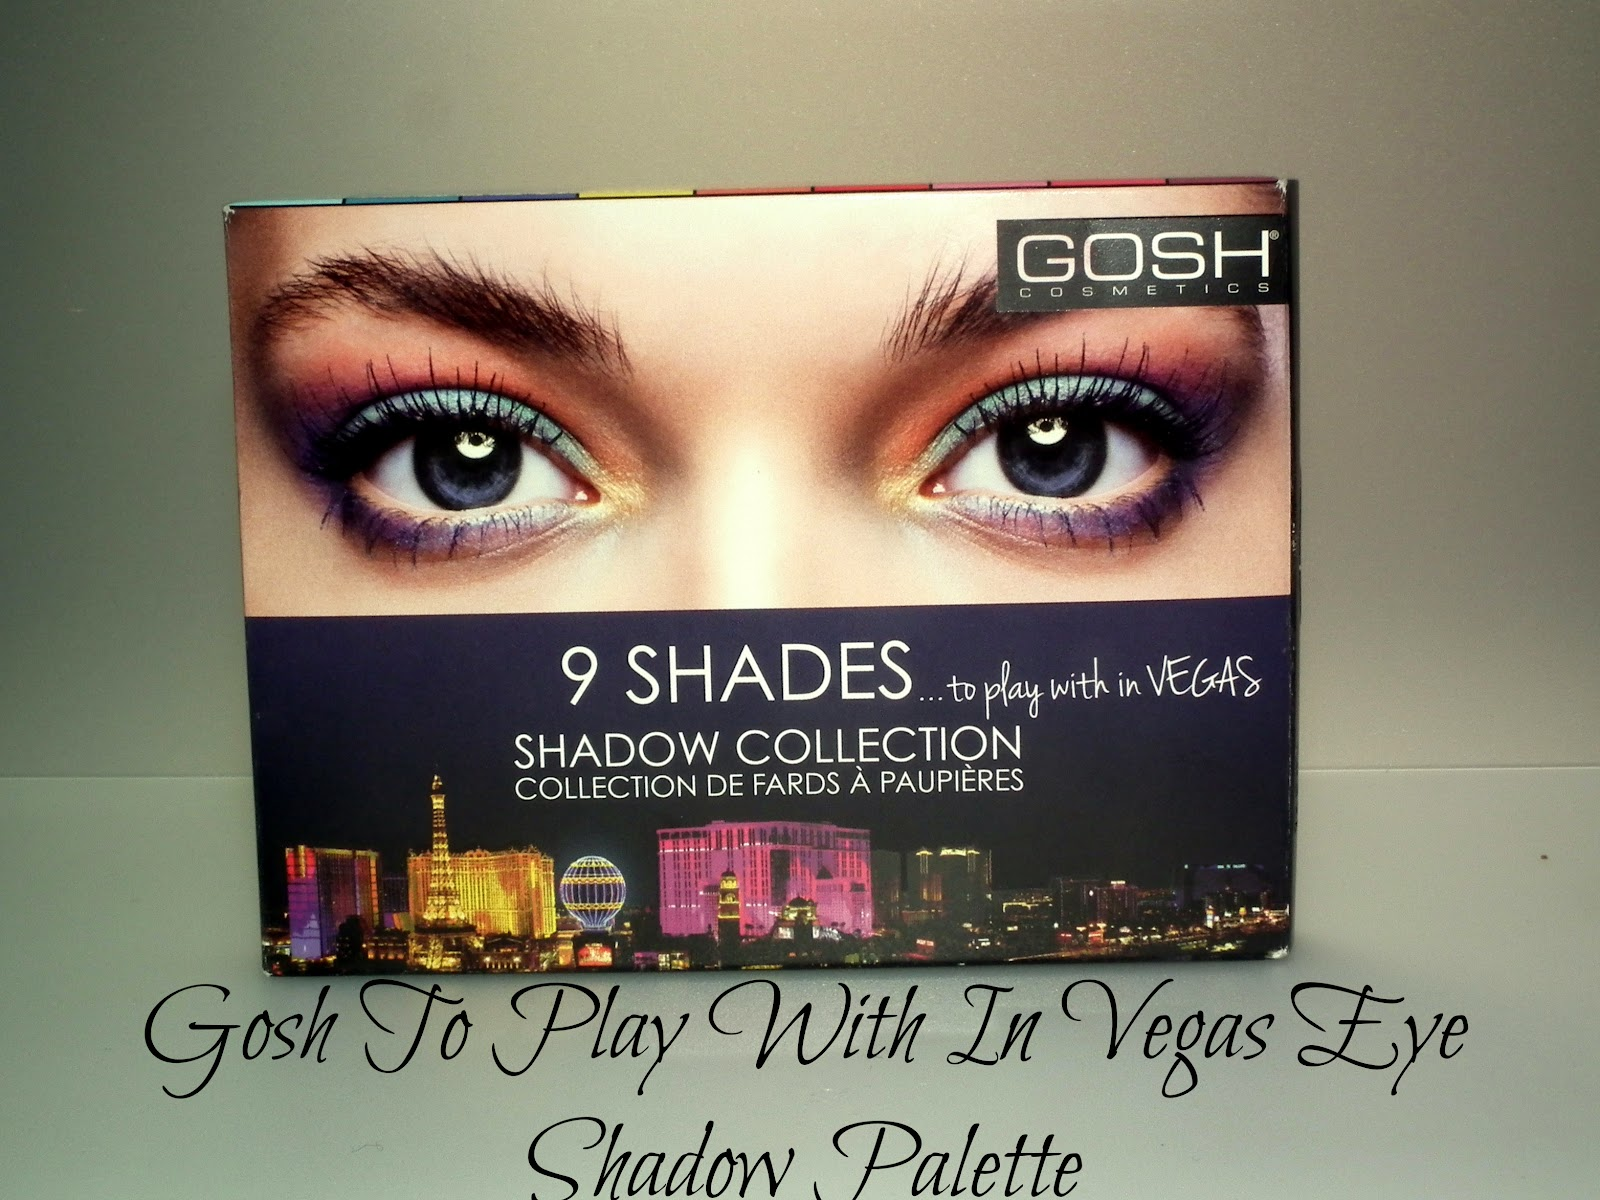 Gosh To Play With In Vegas Eye Shadow Palette Swatches and Review